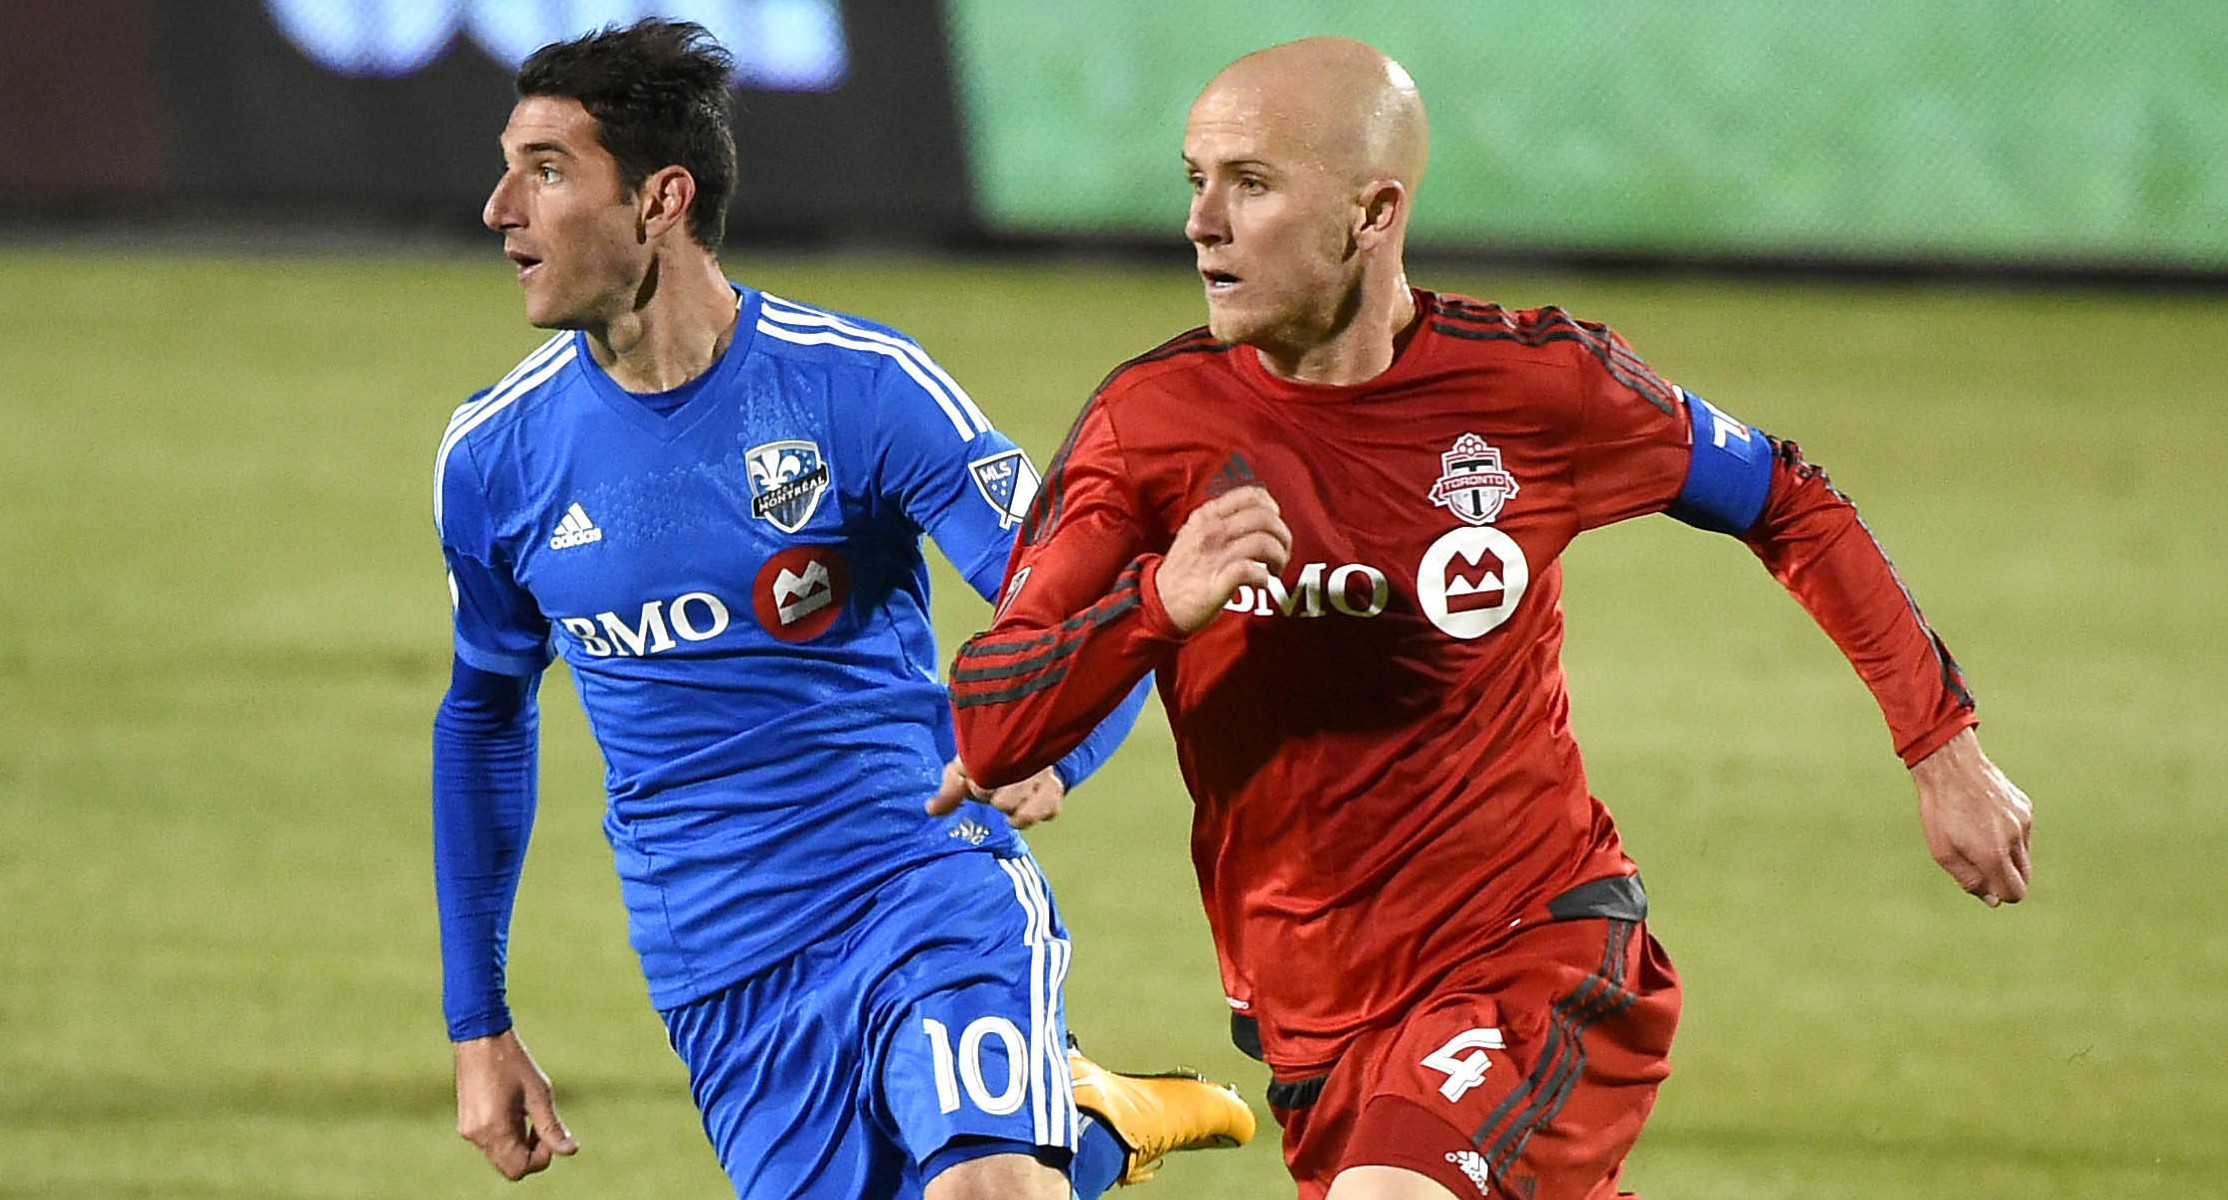 May 13, 2015; Toronto, Ontario, Canada; Toronto FC midfielder Michael Bradley (4) moves the ball past Montreal Impact midfielder Ignacio Piatti (10) during the second half of an Amway Canadian Championship game at BMO Field. Toronto won 3-2 but Montreal advances on aggregate score. Mandatory Credit: Dan Hamilton-USA TODAY Sports